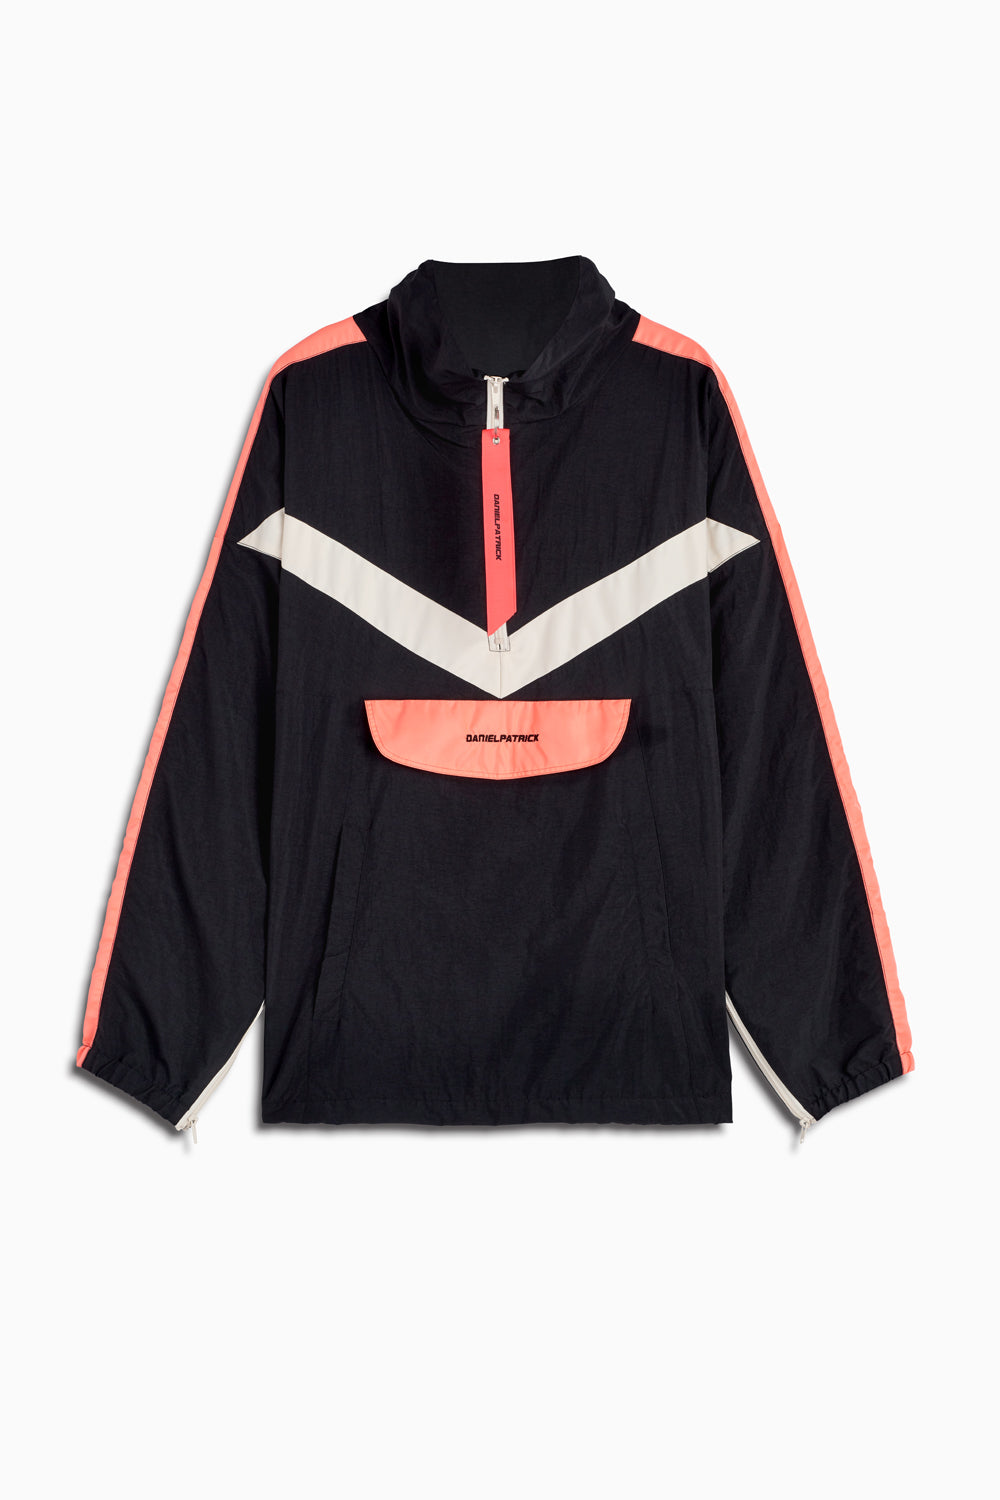 2019 anorak sport in black/coral/ivory by daniel patrick